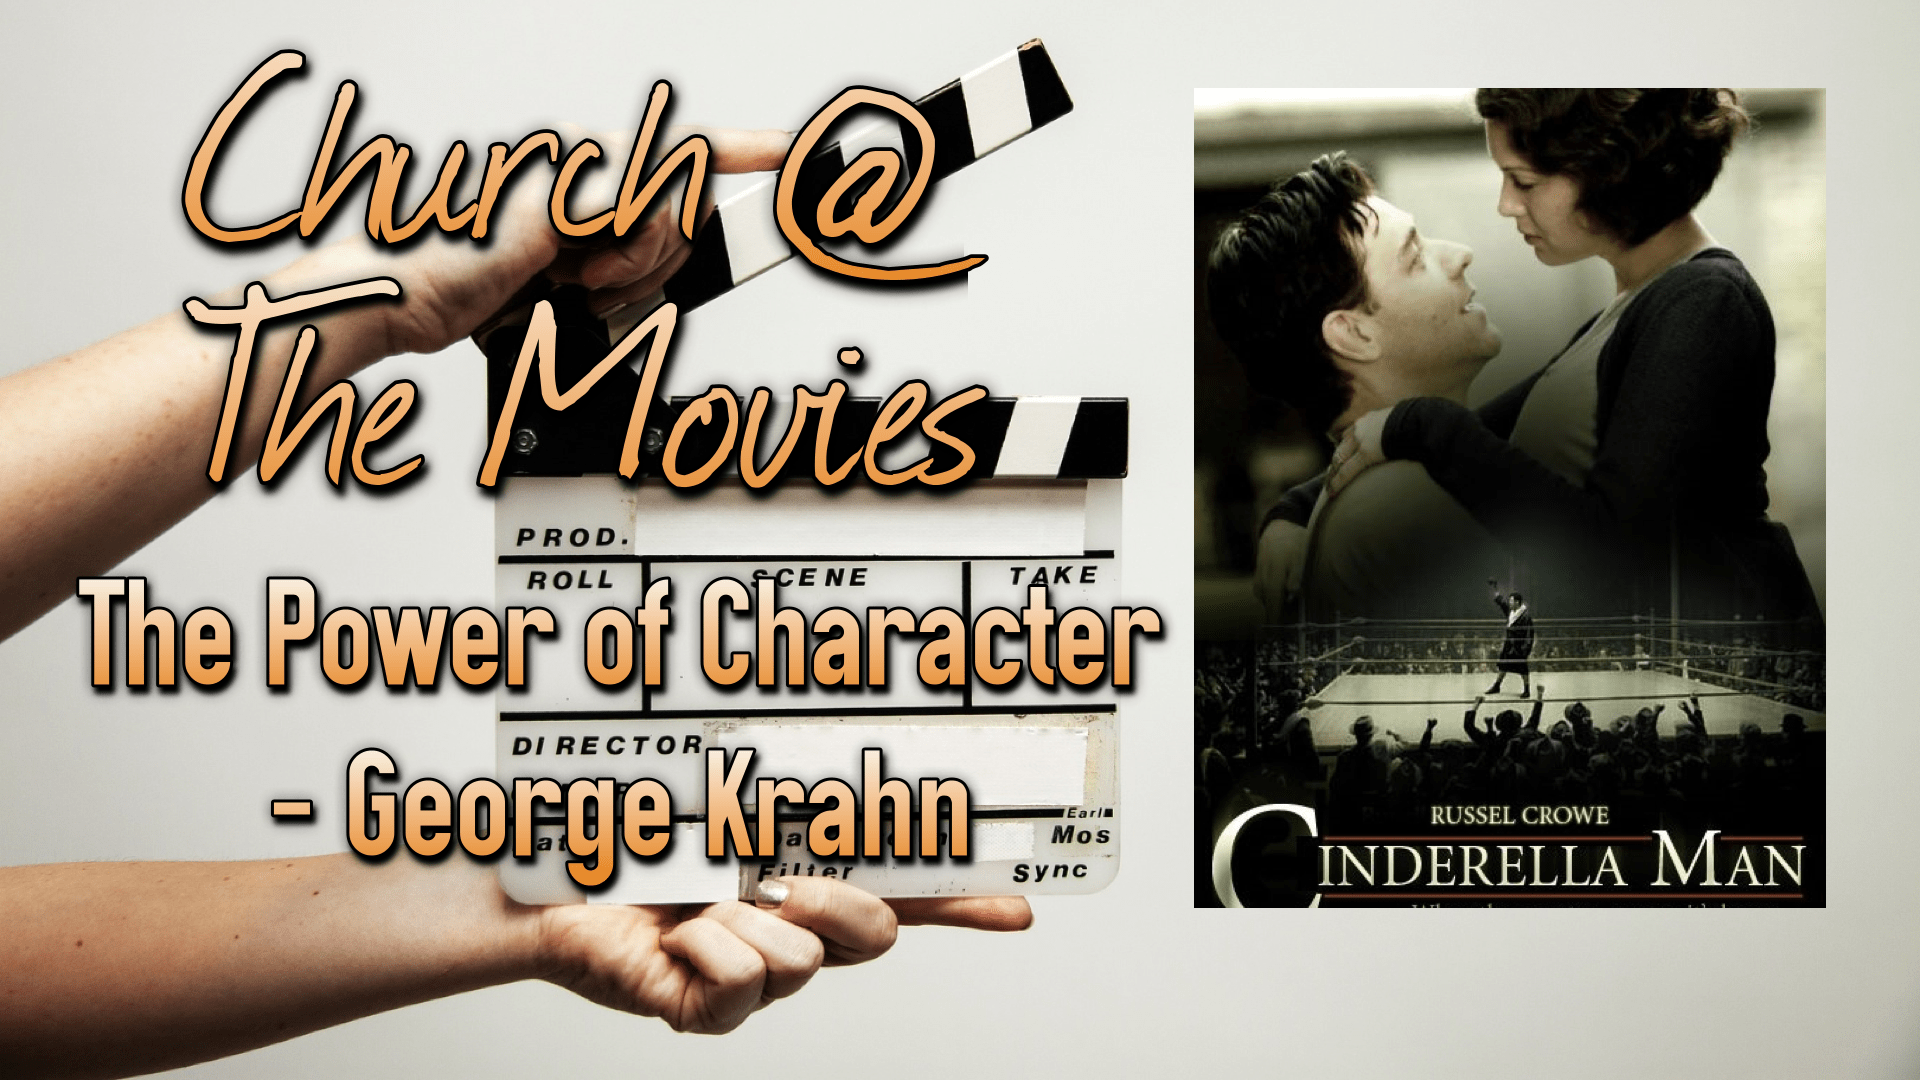 Church @ The Movies - Cinderella Man - The Power of Character